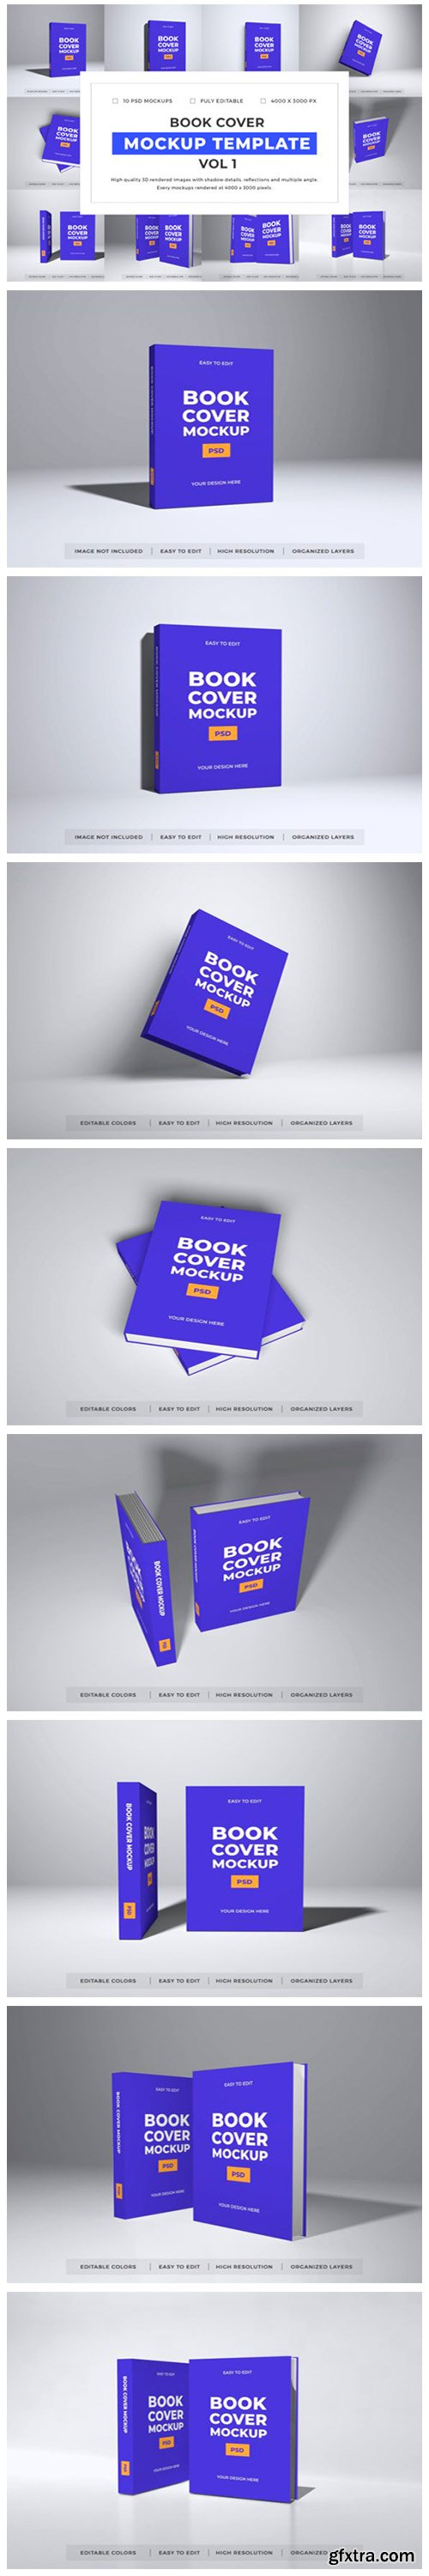 Book Cover Mockup Template Bundle Vol 1 6701917